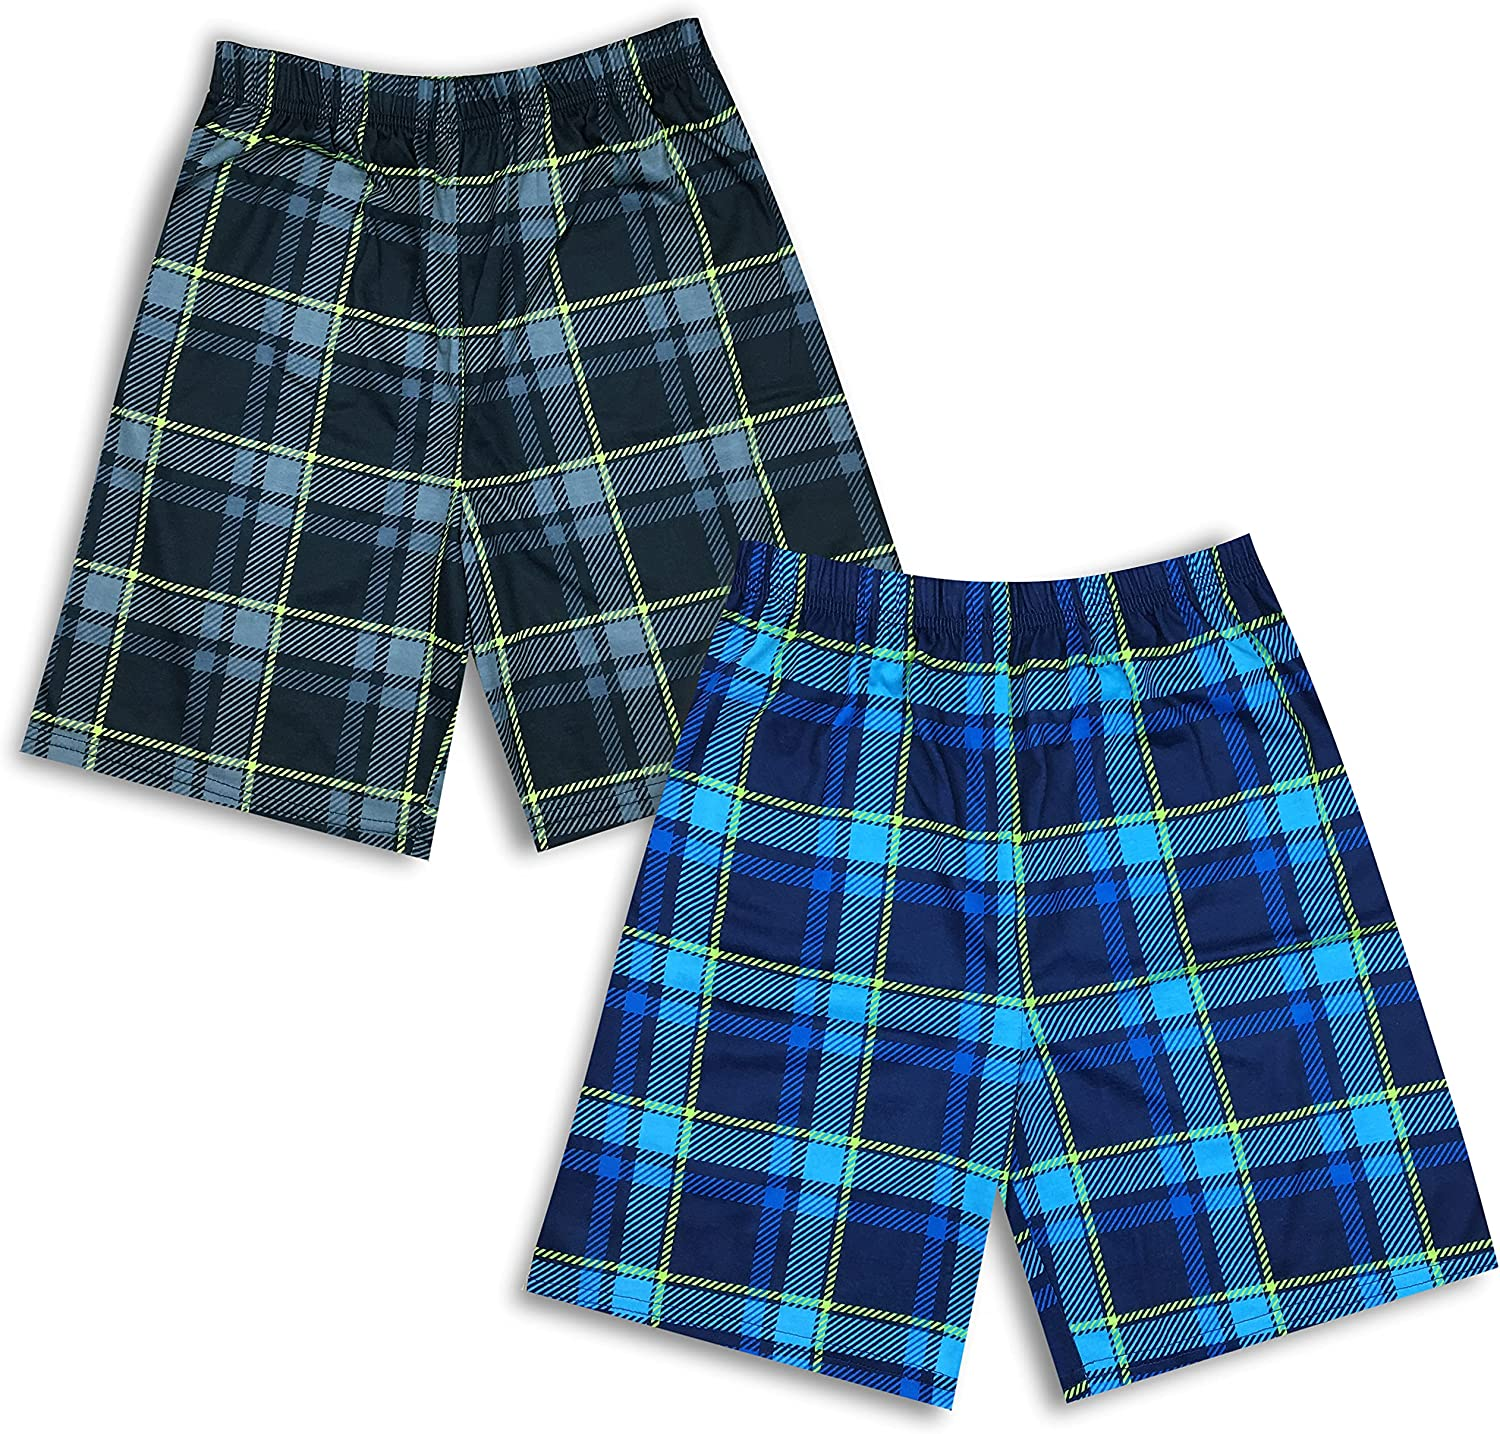 Mad Dog Concepts Boys Active Jersey Shorts, Gym Shorts, Sizes M-XL, 2 Pack